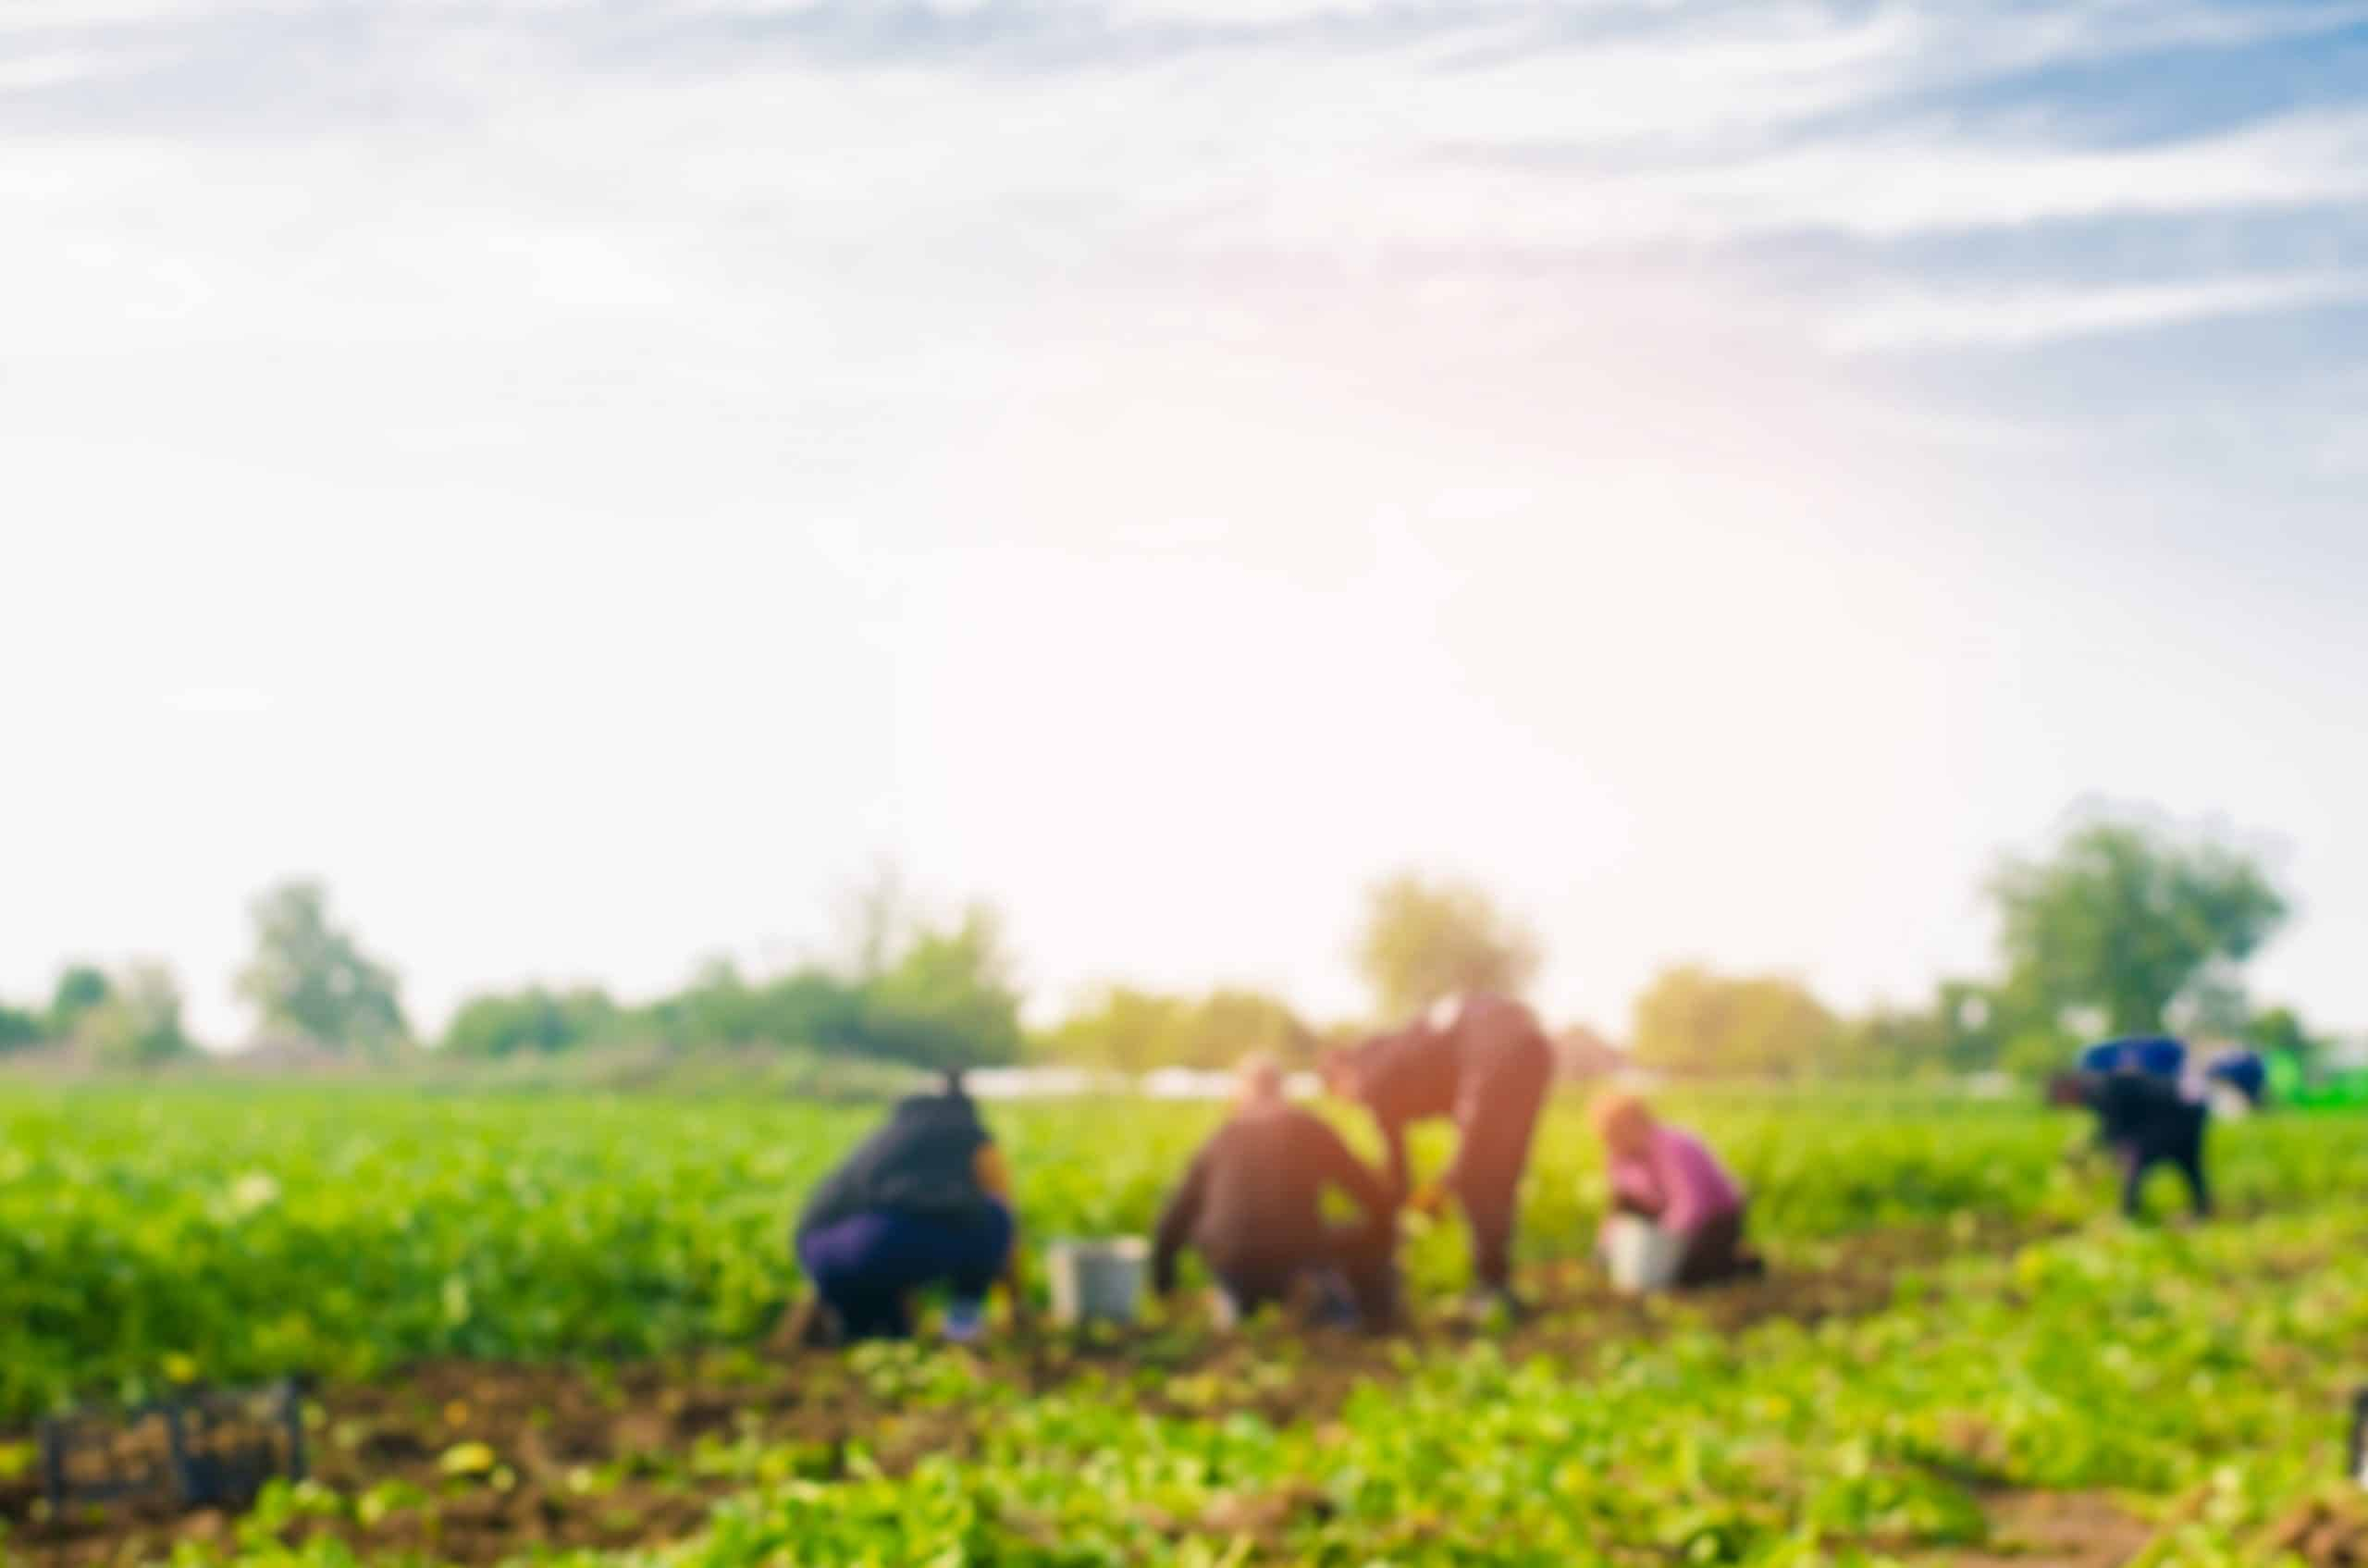 Workers,Work,On,The,Field,,Harvesting,,Manual,Labor,,Farming,,Agriculture,